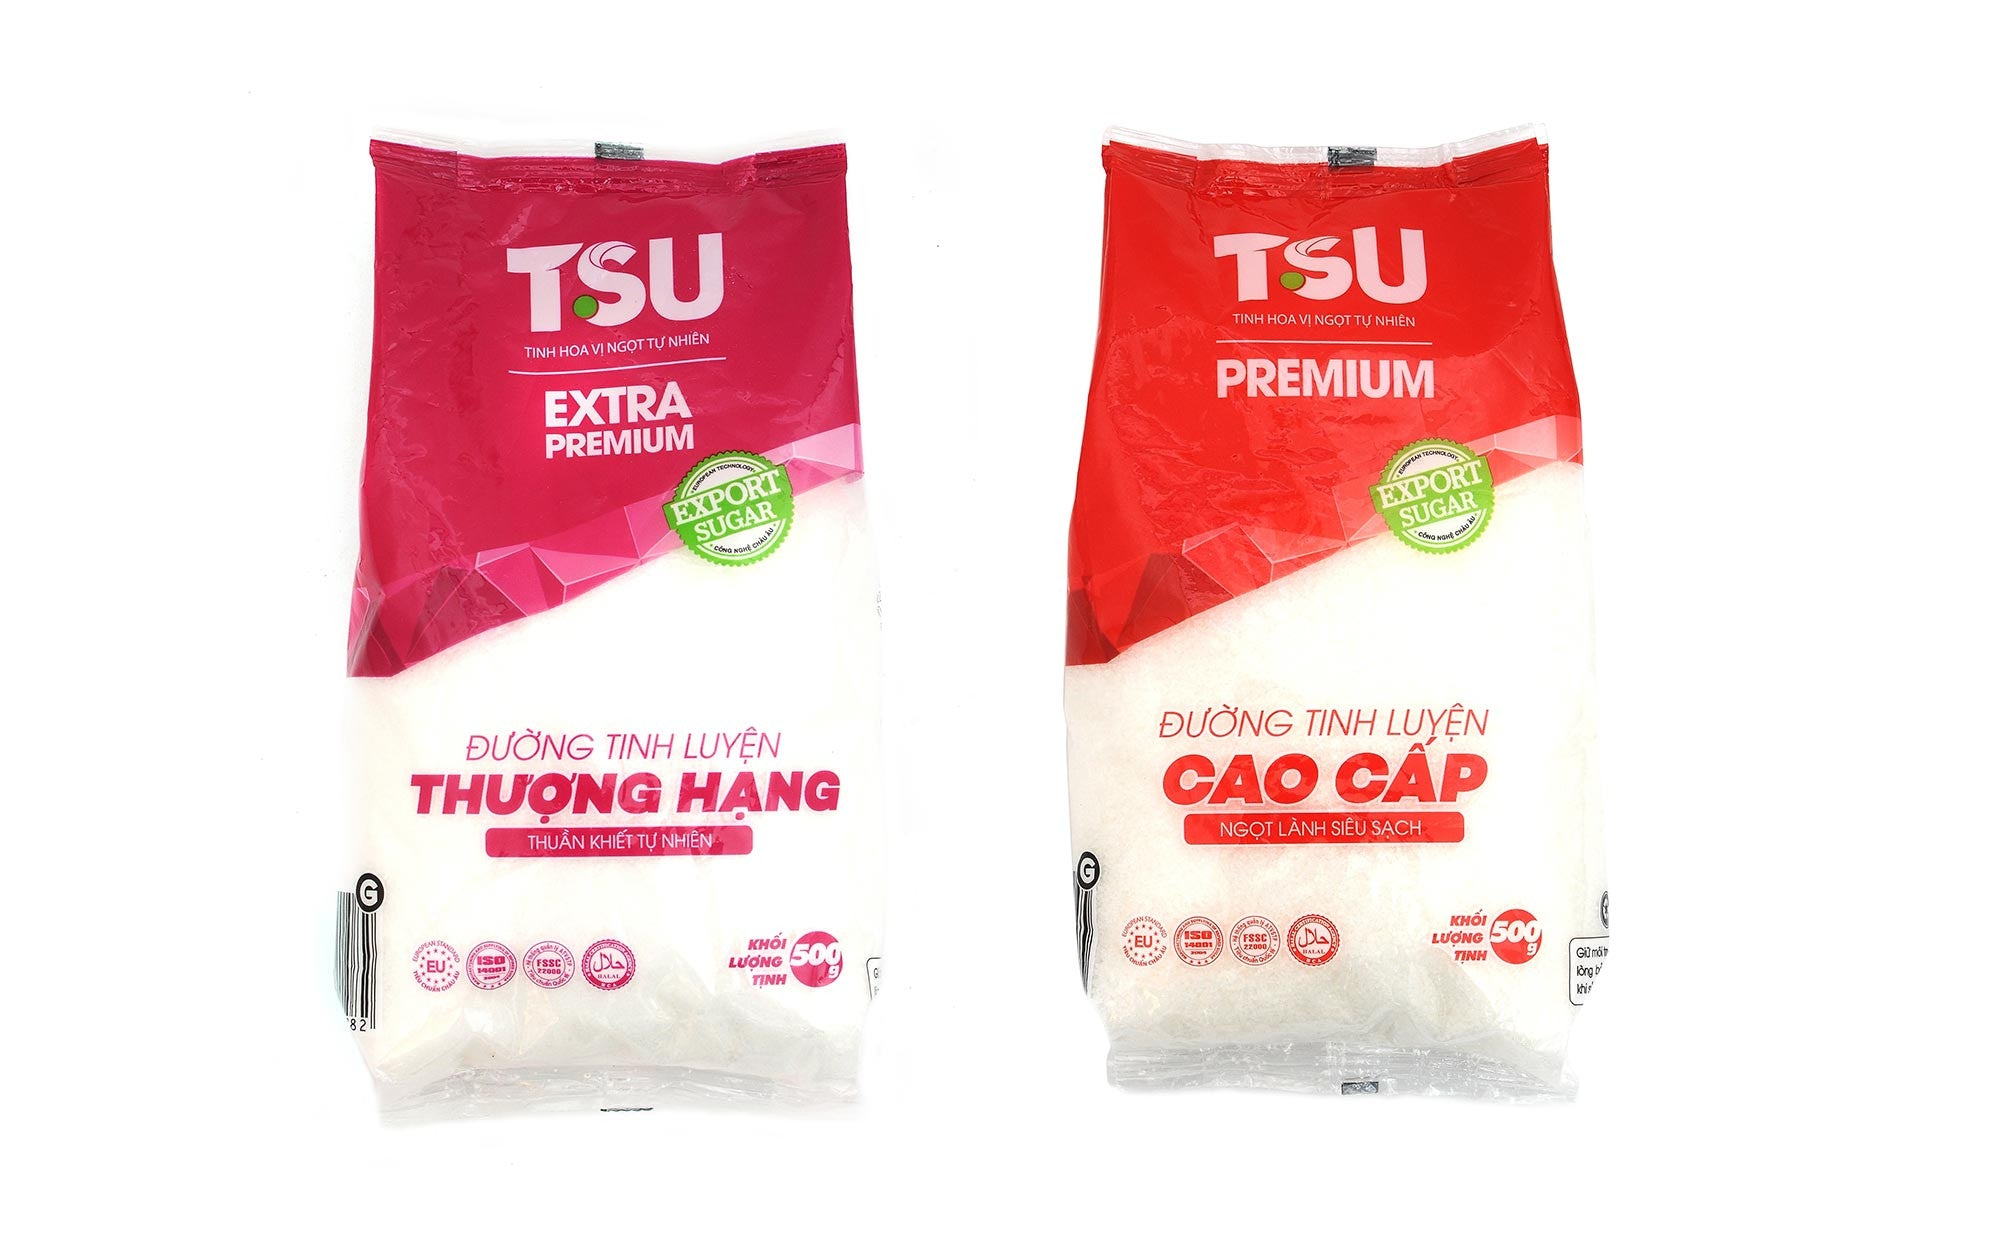 TSU PREMIUM & TSU EXTRA PREMIUM Refined Sugar – European Technology, Natural Sweetness